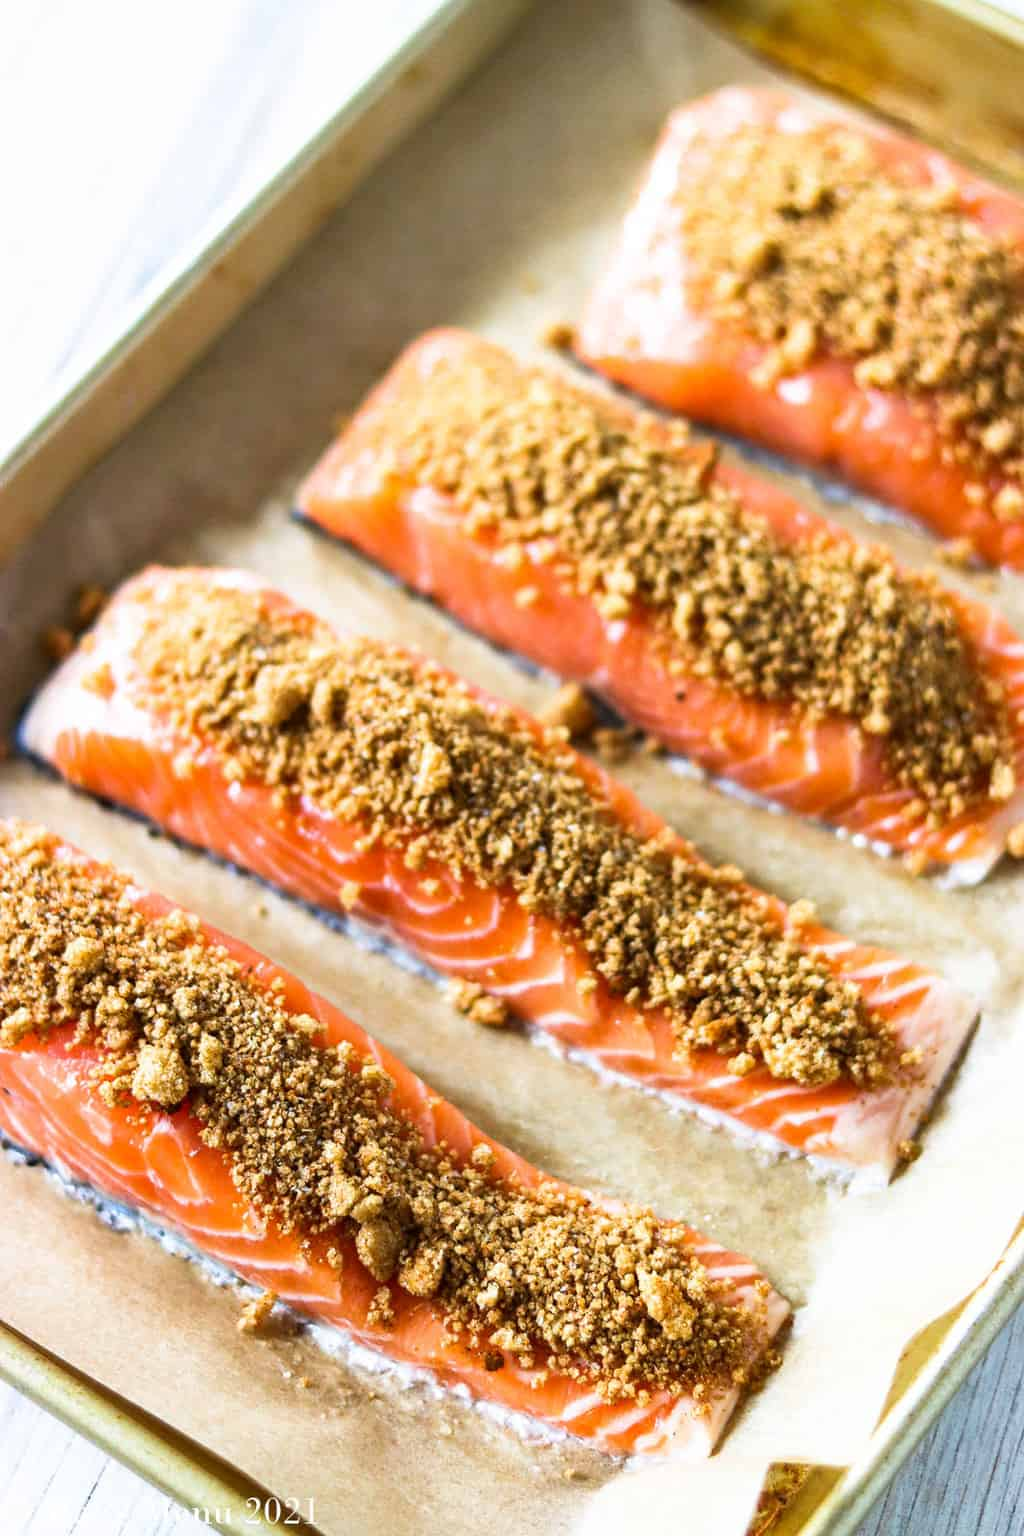 A baking sheet with salmon an a brown sugar spice blend on top of the pieces